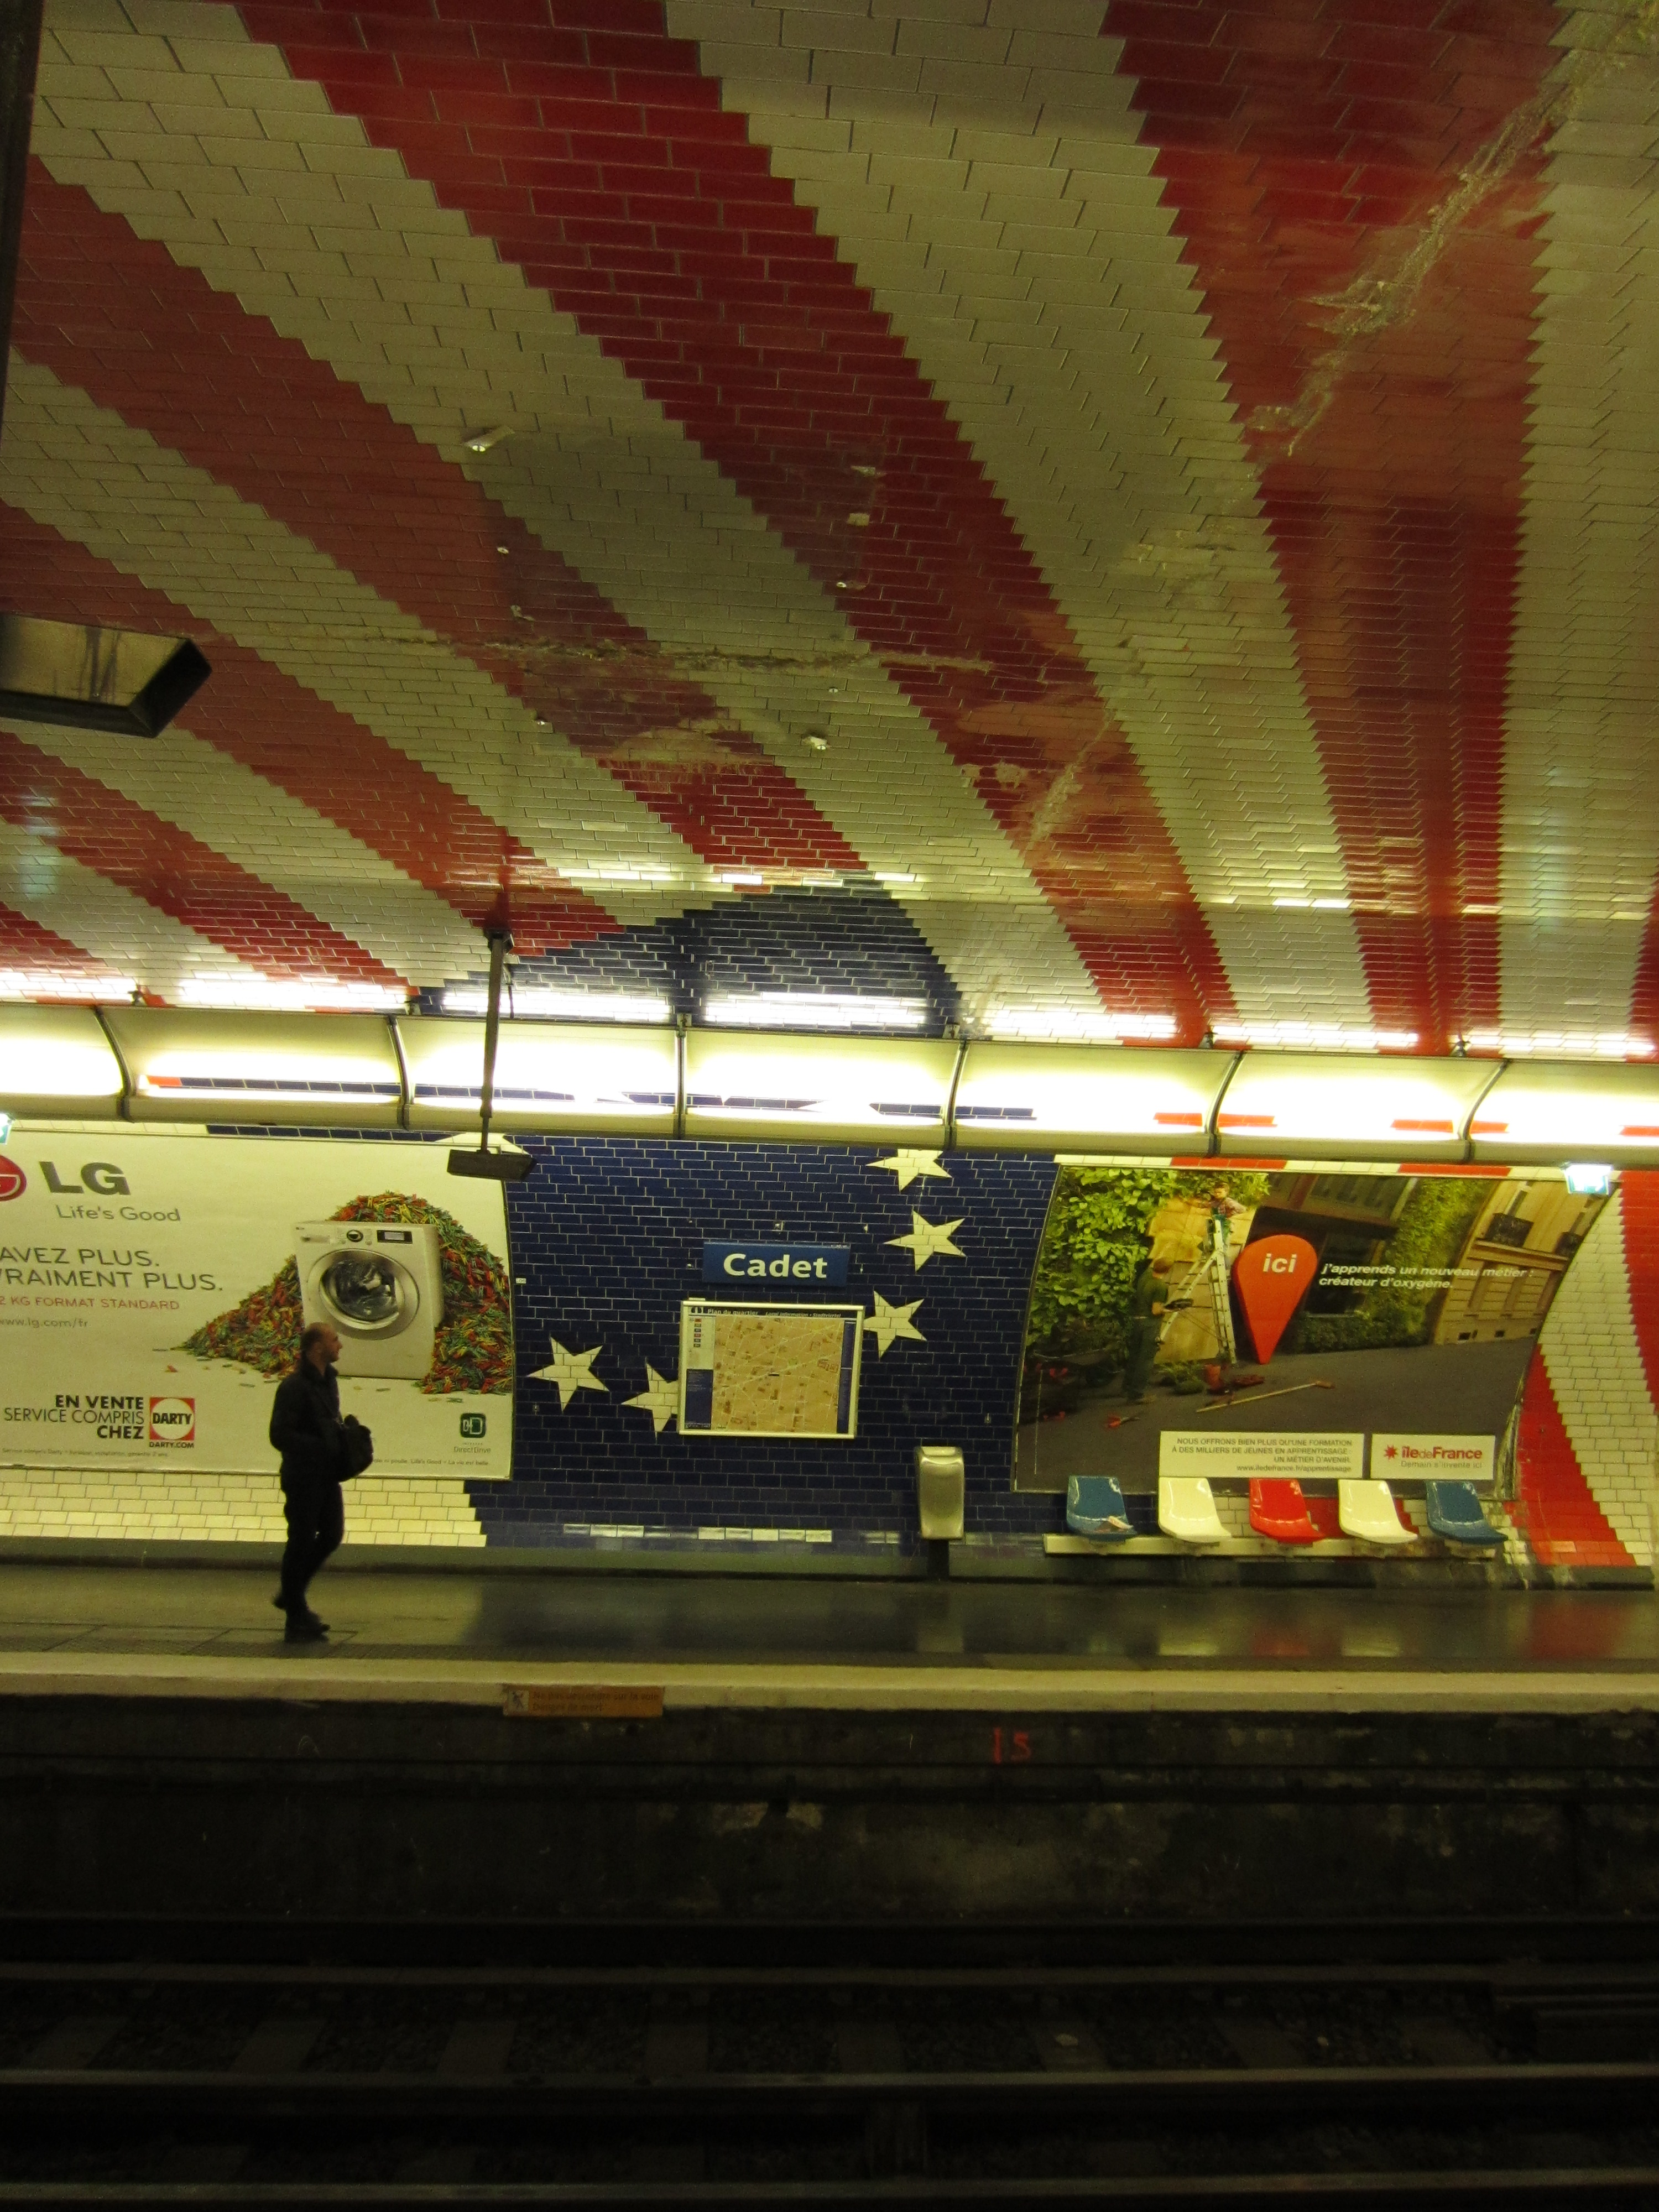 a patris station with red and white decorations